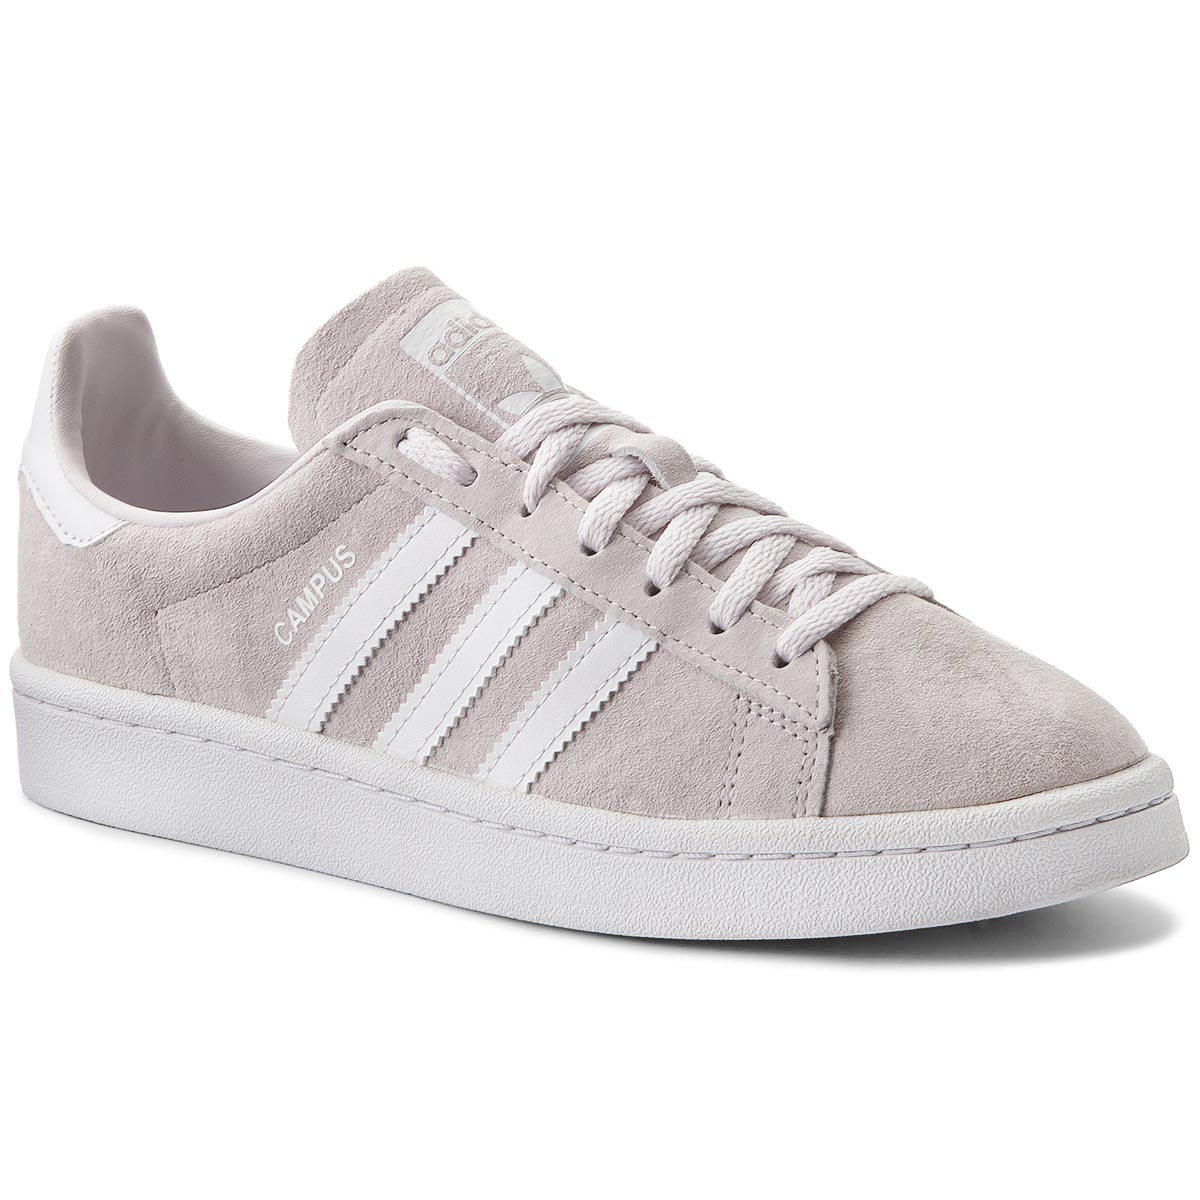 adidas campus mujer outlet